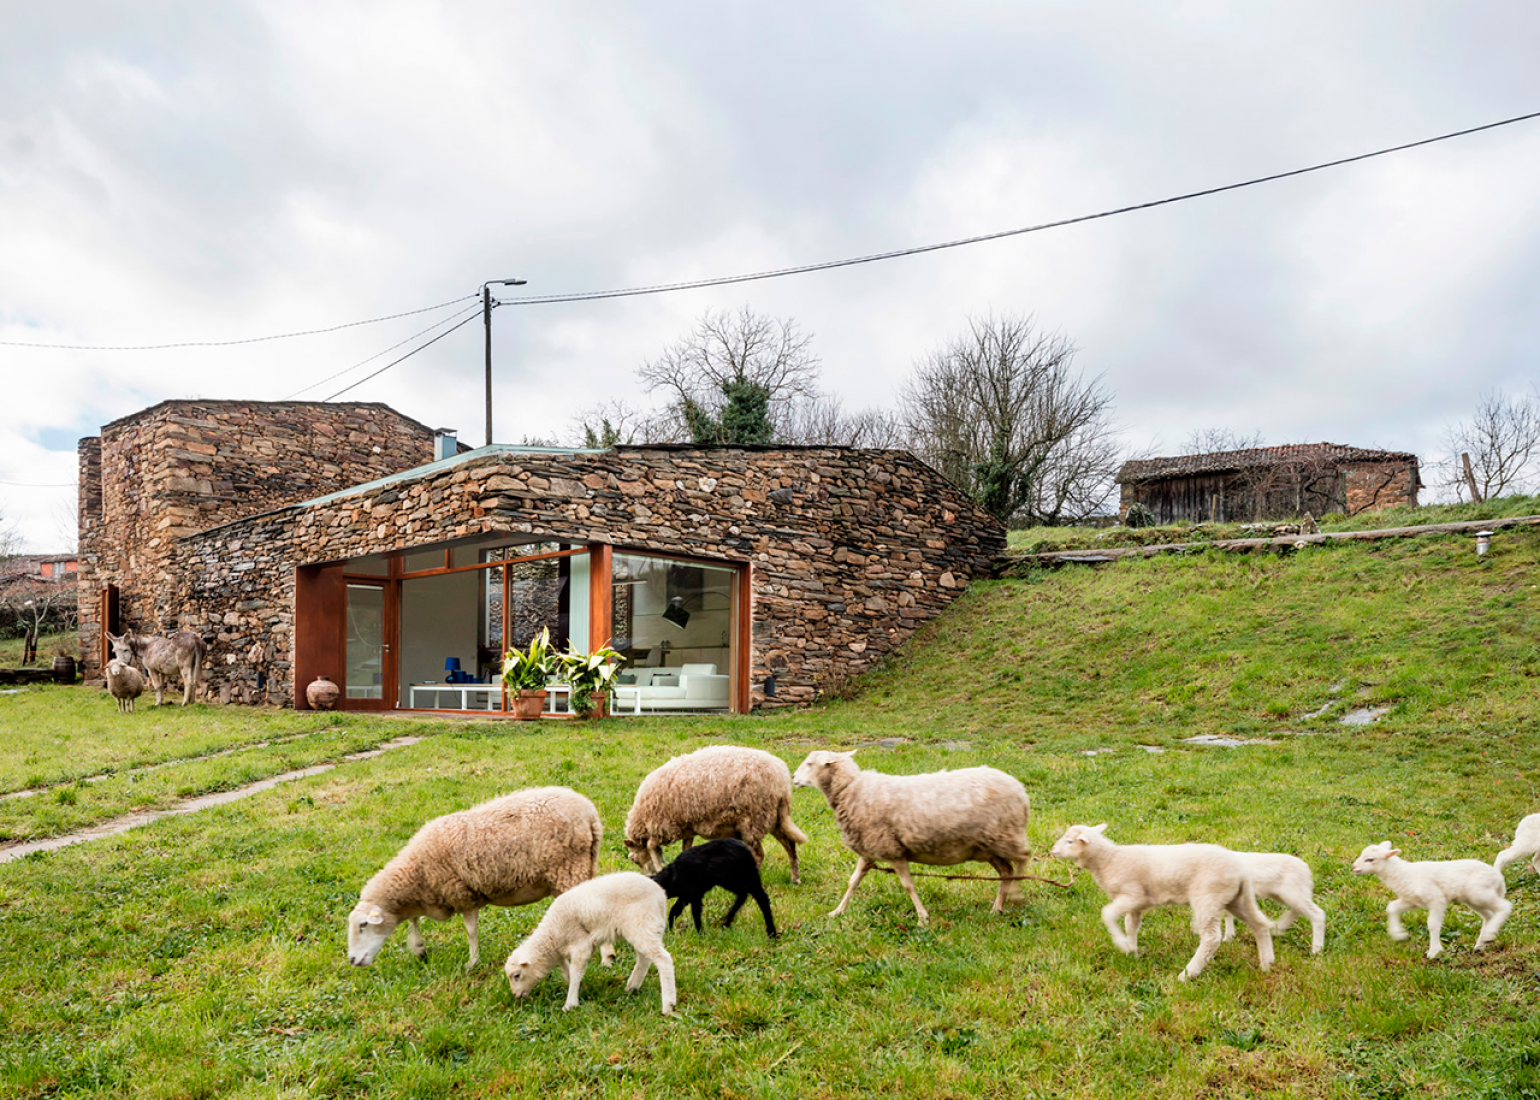 A'Bodega (old winery vs home) by Cubus Arquitectura. Photography © Adrià Goula.